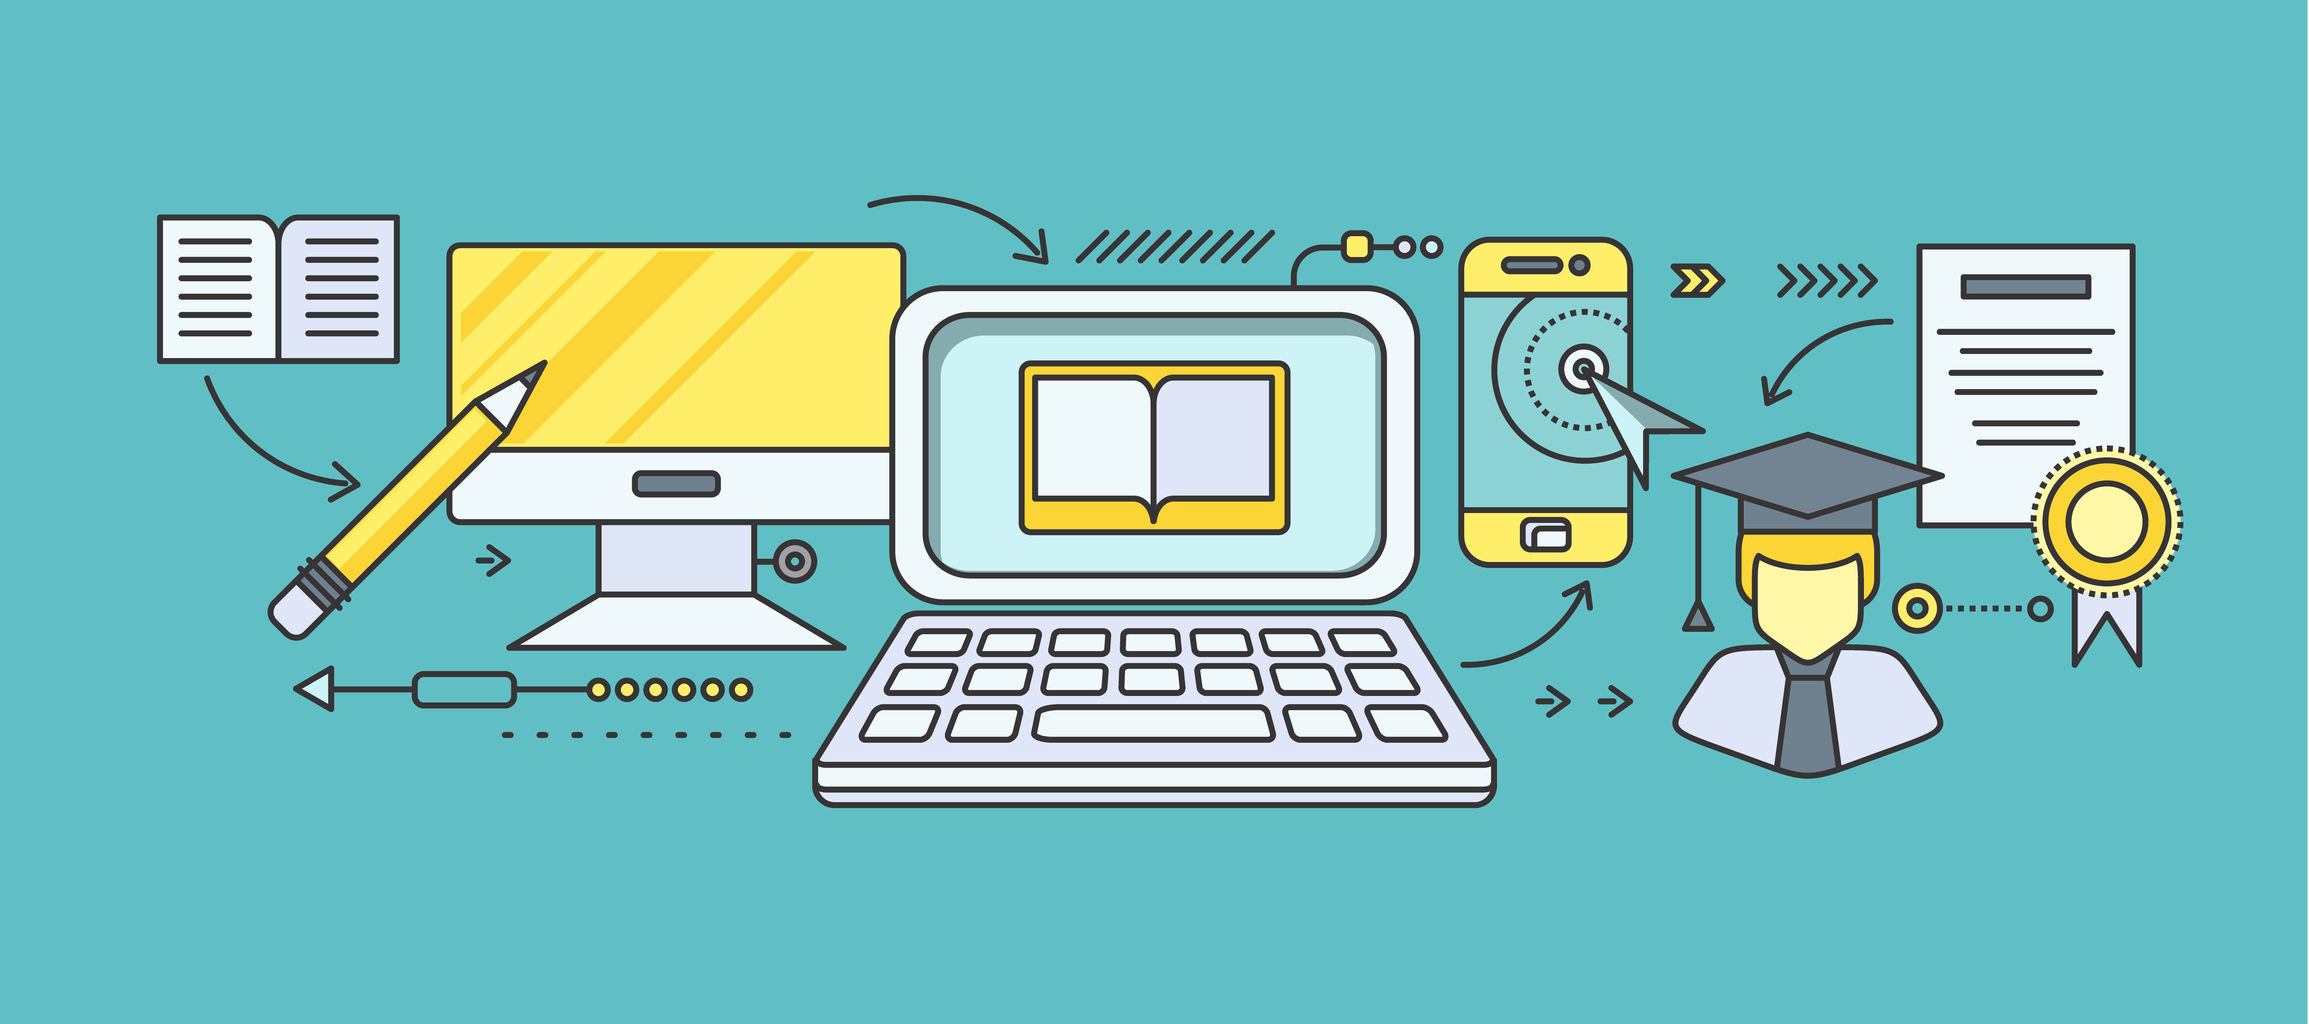 Etes-vous MOOC, COOC Ou SPOC ? Blended Learning Ou 100 % E-learning ?